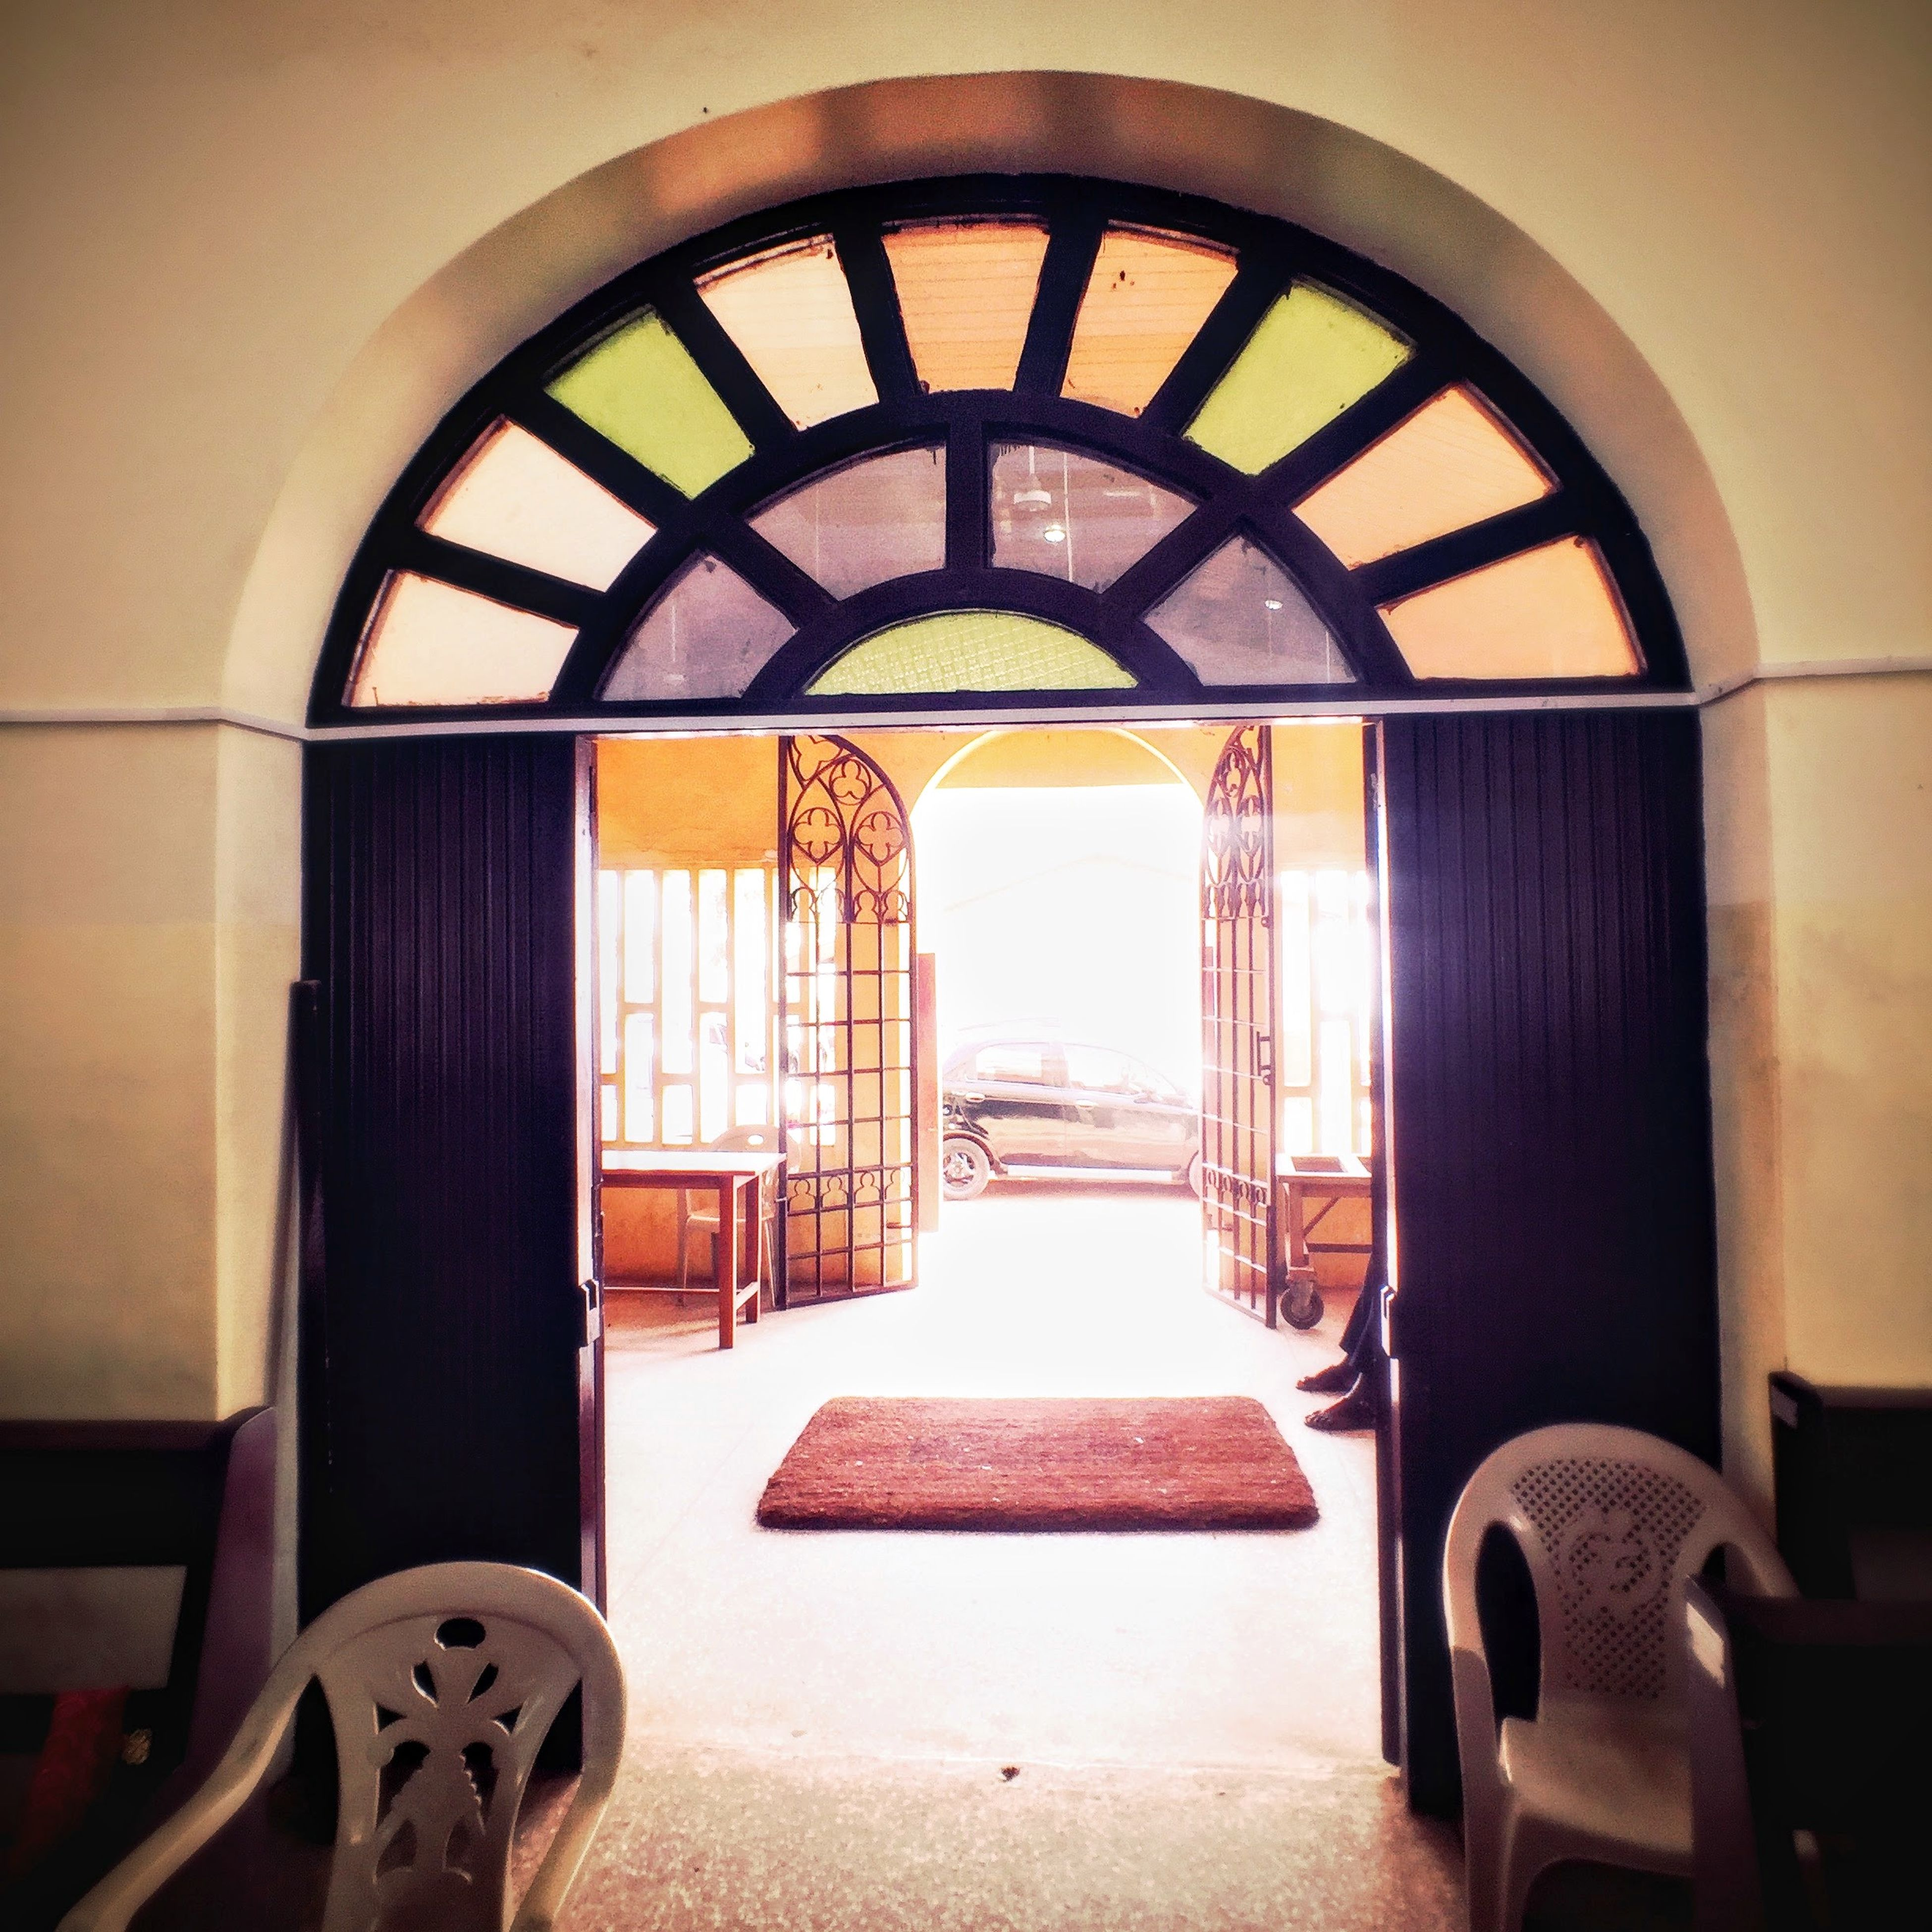 indoors, arch, architecture, window, built structure, interior, empty, door, absence, ceiling, chair, entrance, no people, day, house, building, sunlight, wall, flooring, wall - building feature